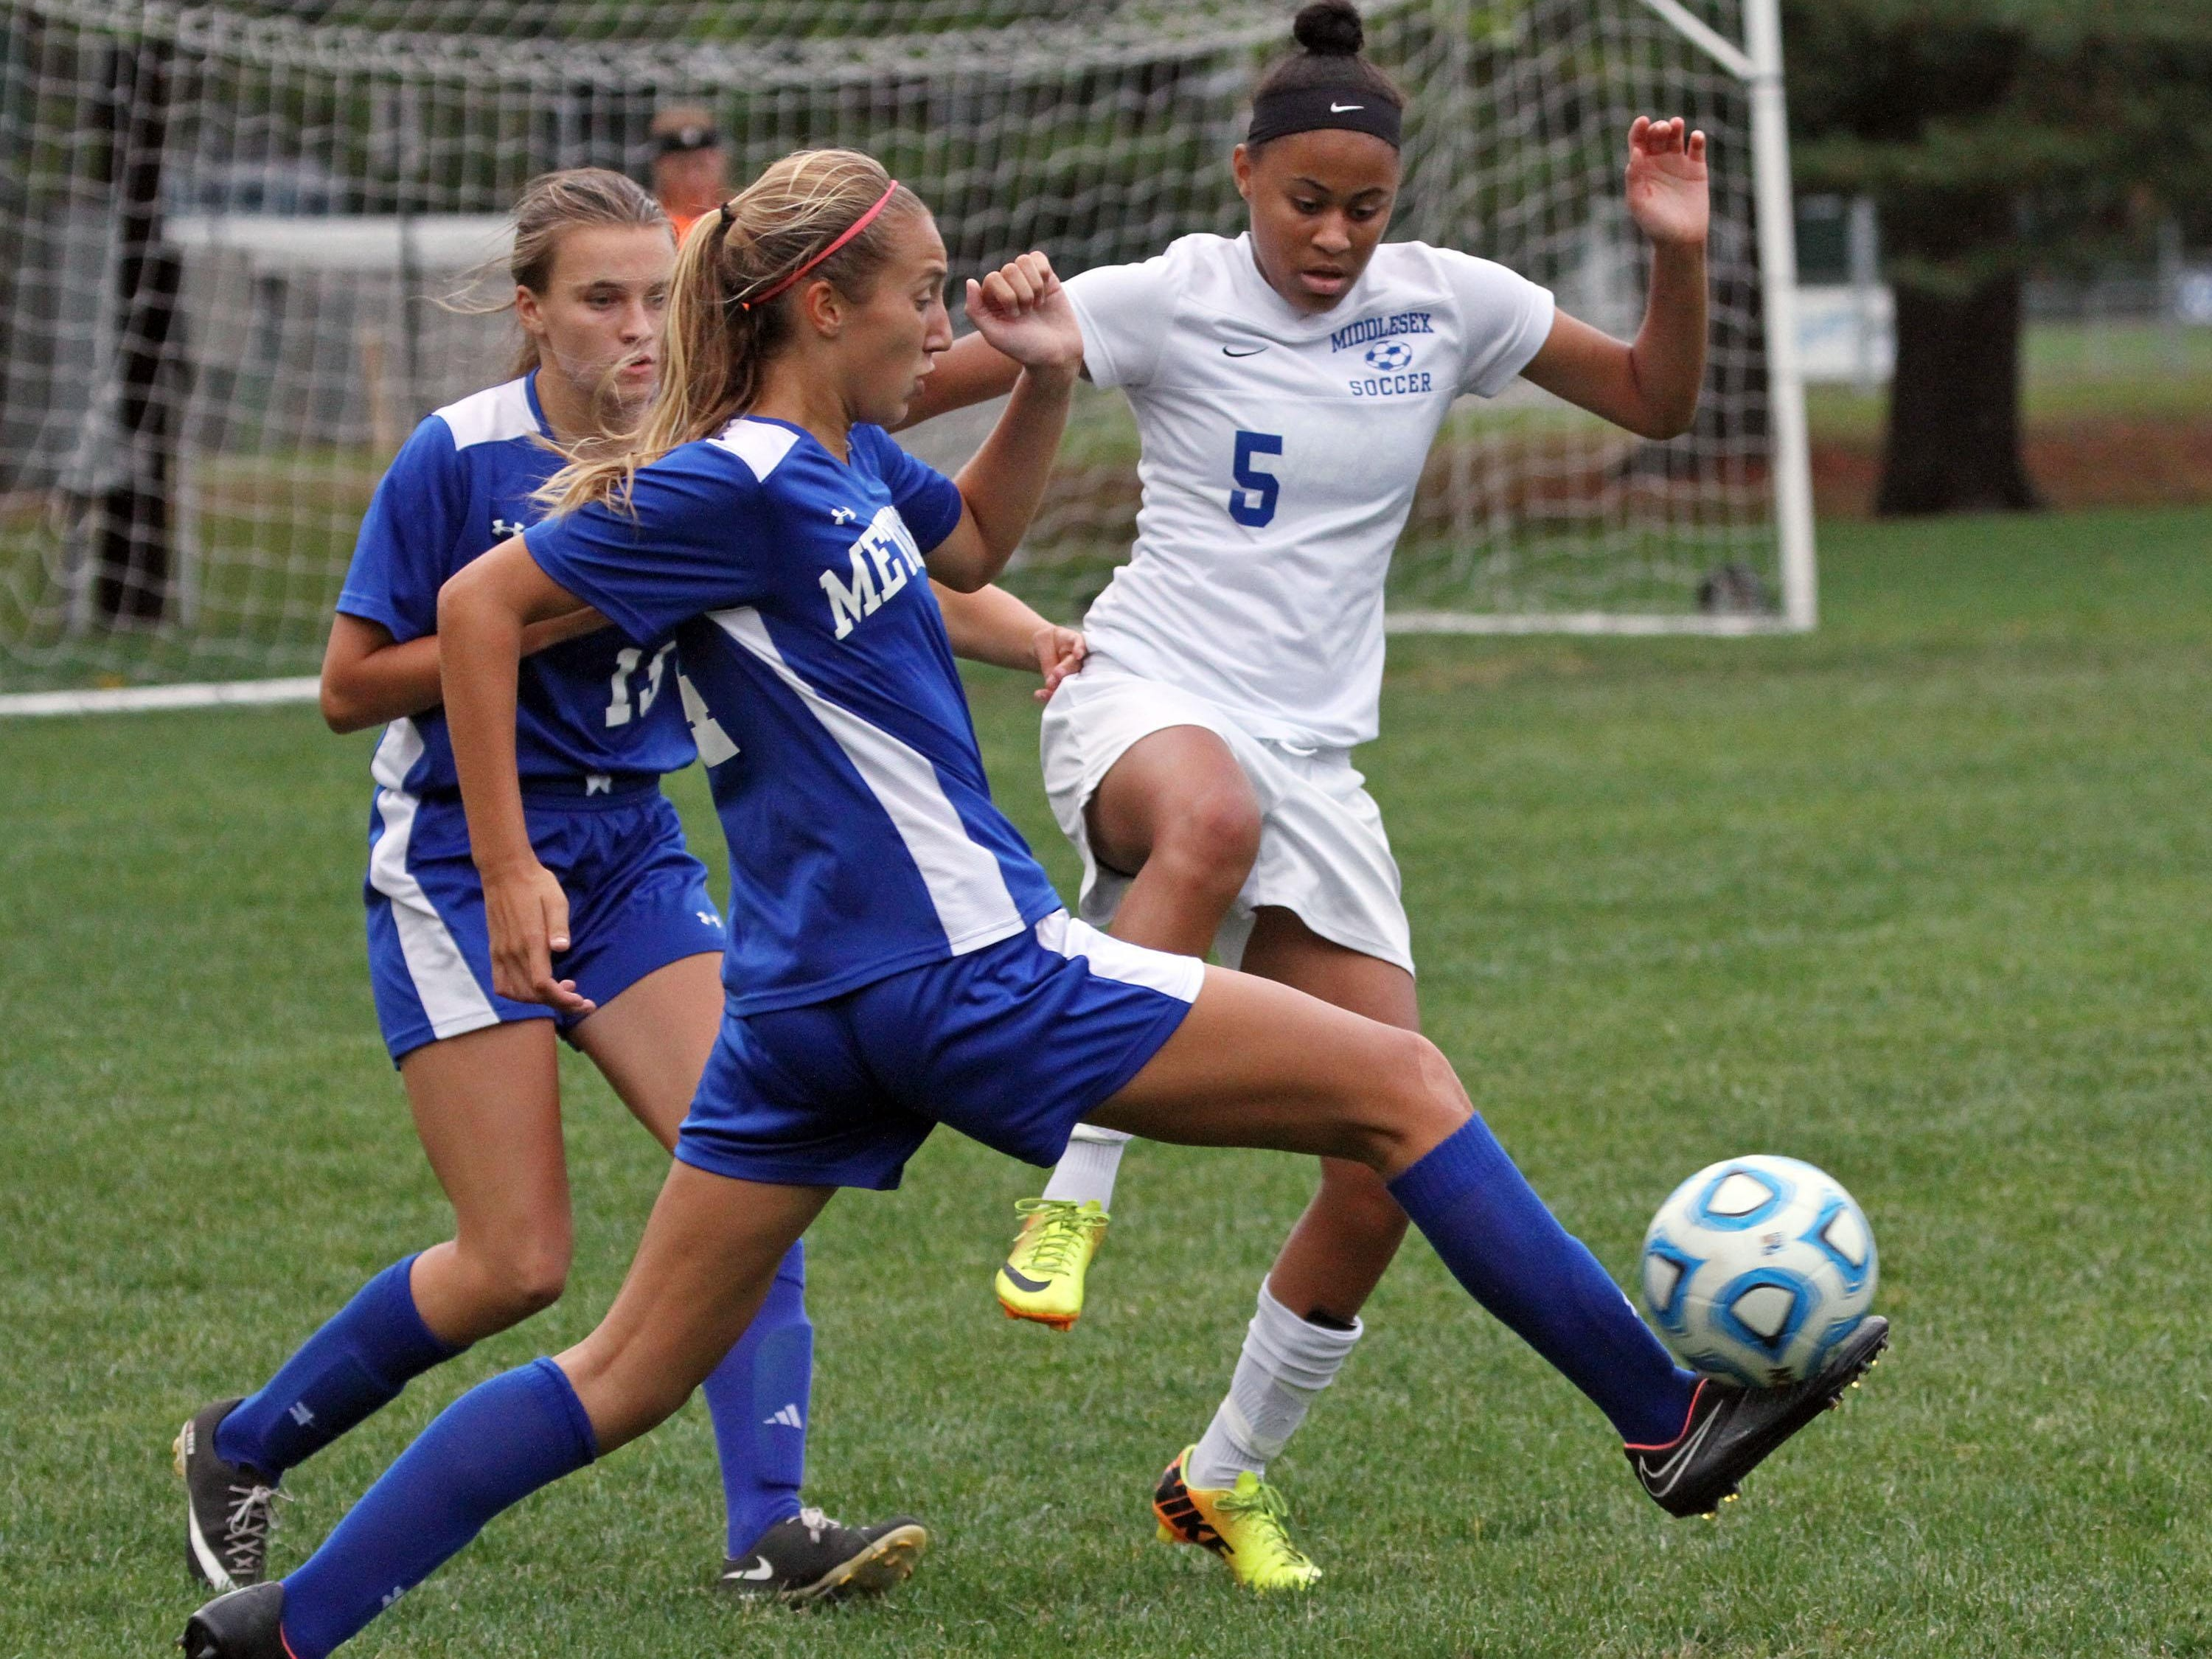 Metuchen's Hope Kenny boots the ball as Zakiya Beckles of Middlesex (right) challenges and teammate Drew Schuchman (left) watches on Wednesday.